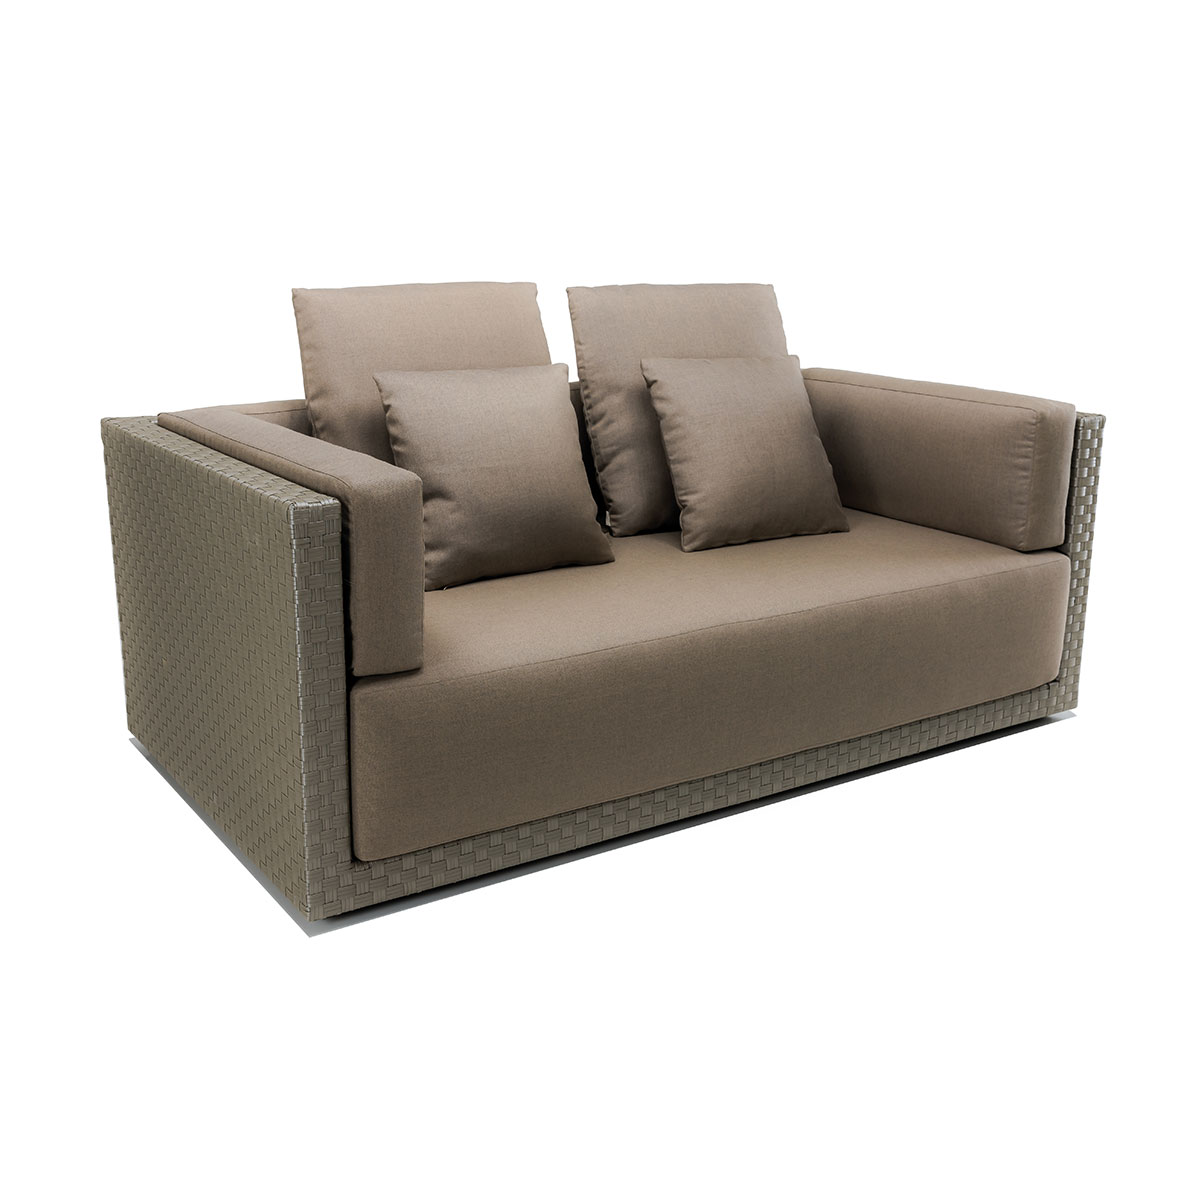 2 seated sofa Sofas Braid